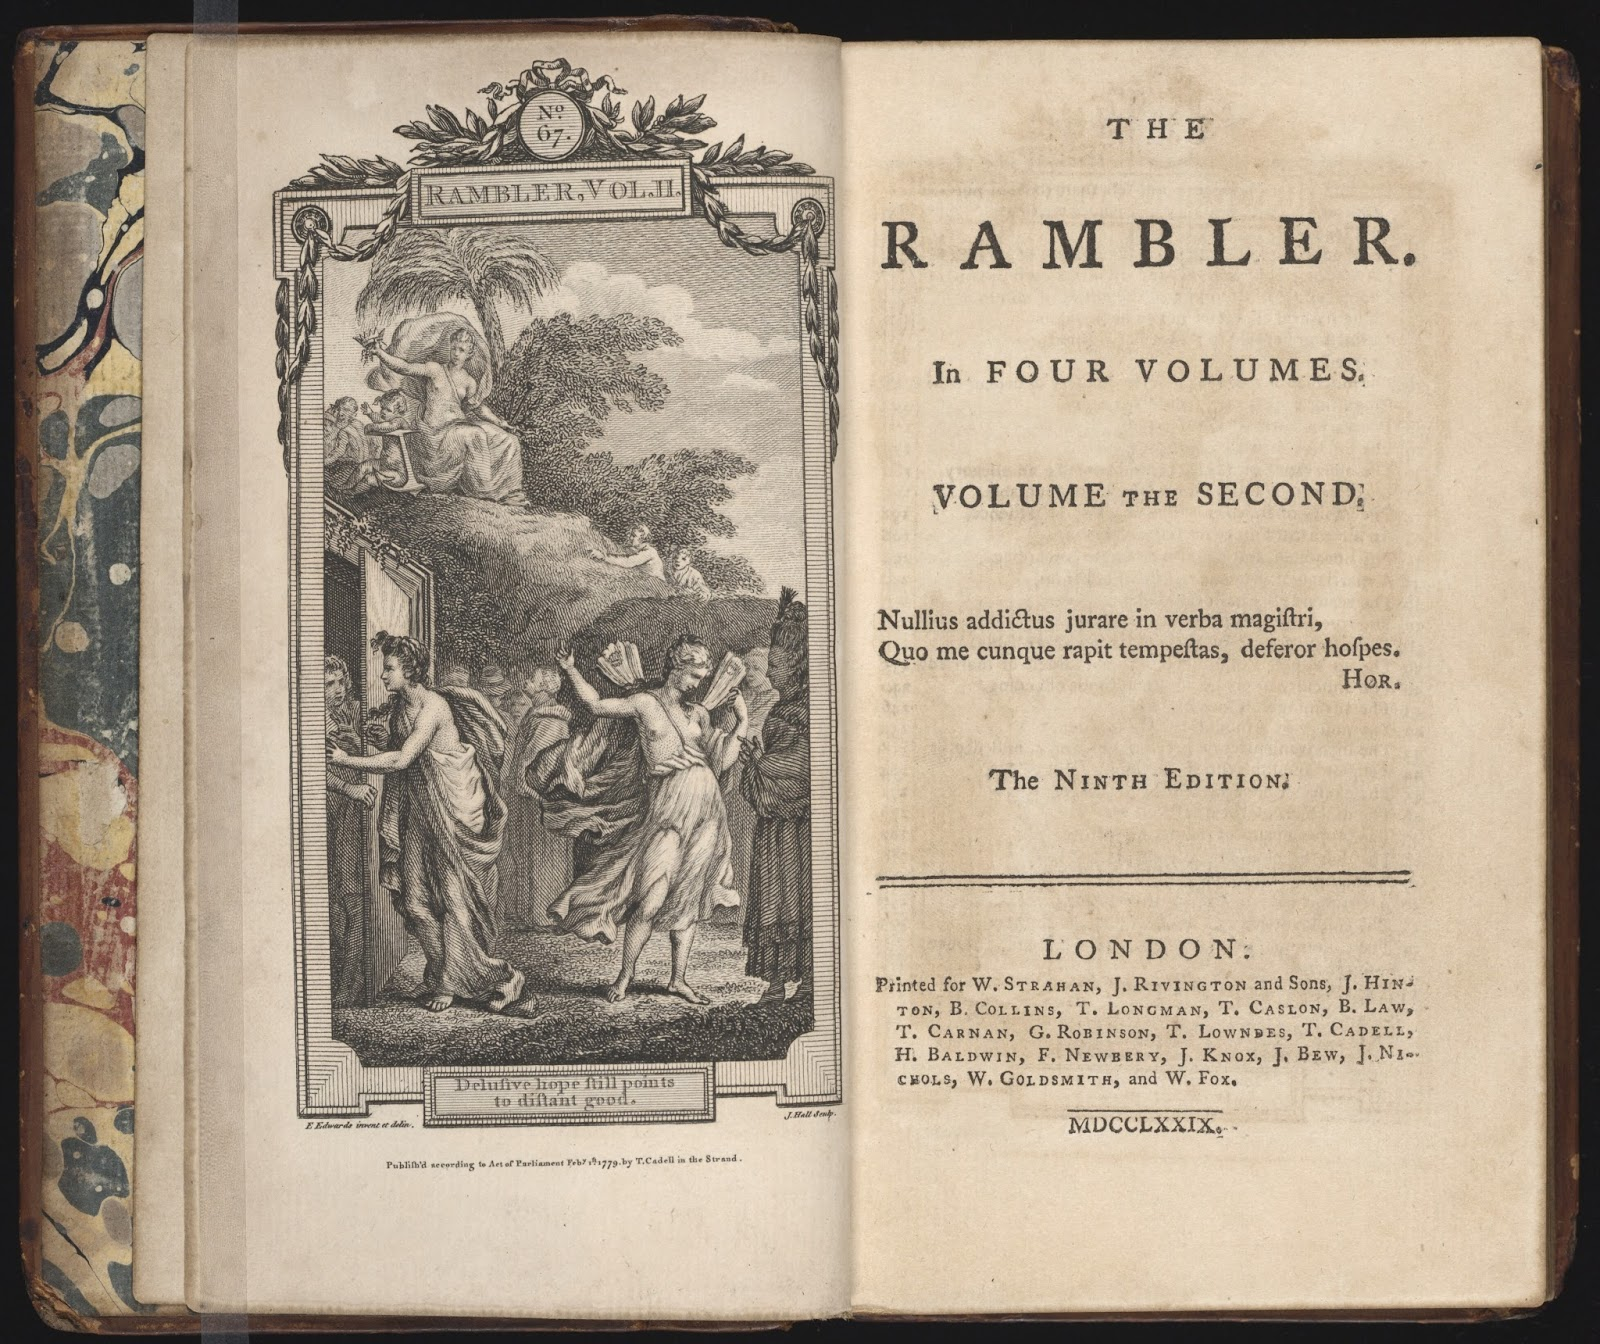 samuel johnson the rambler essay 156 This essay examines the fictitious letters to the editor in samuel johnson's rambler in order to explore the author's powerful ambivalence toward his various personas, his readership, and his own text throughout the periodical.